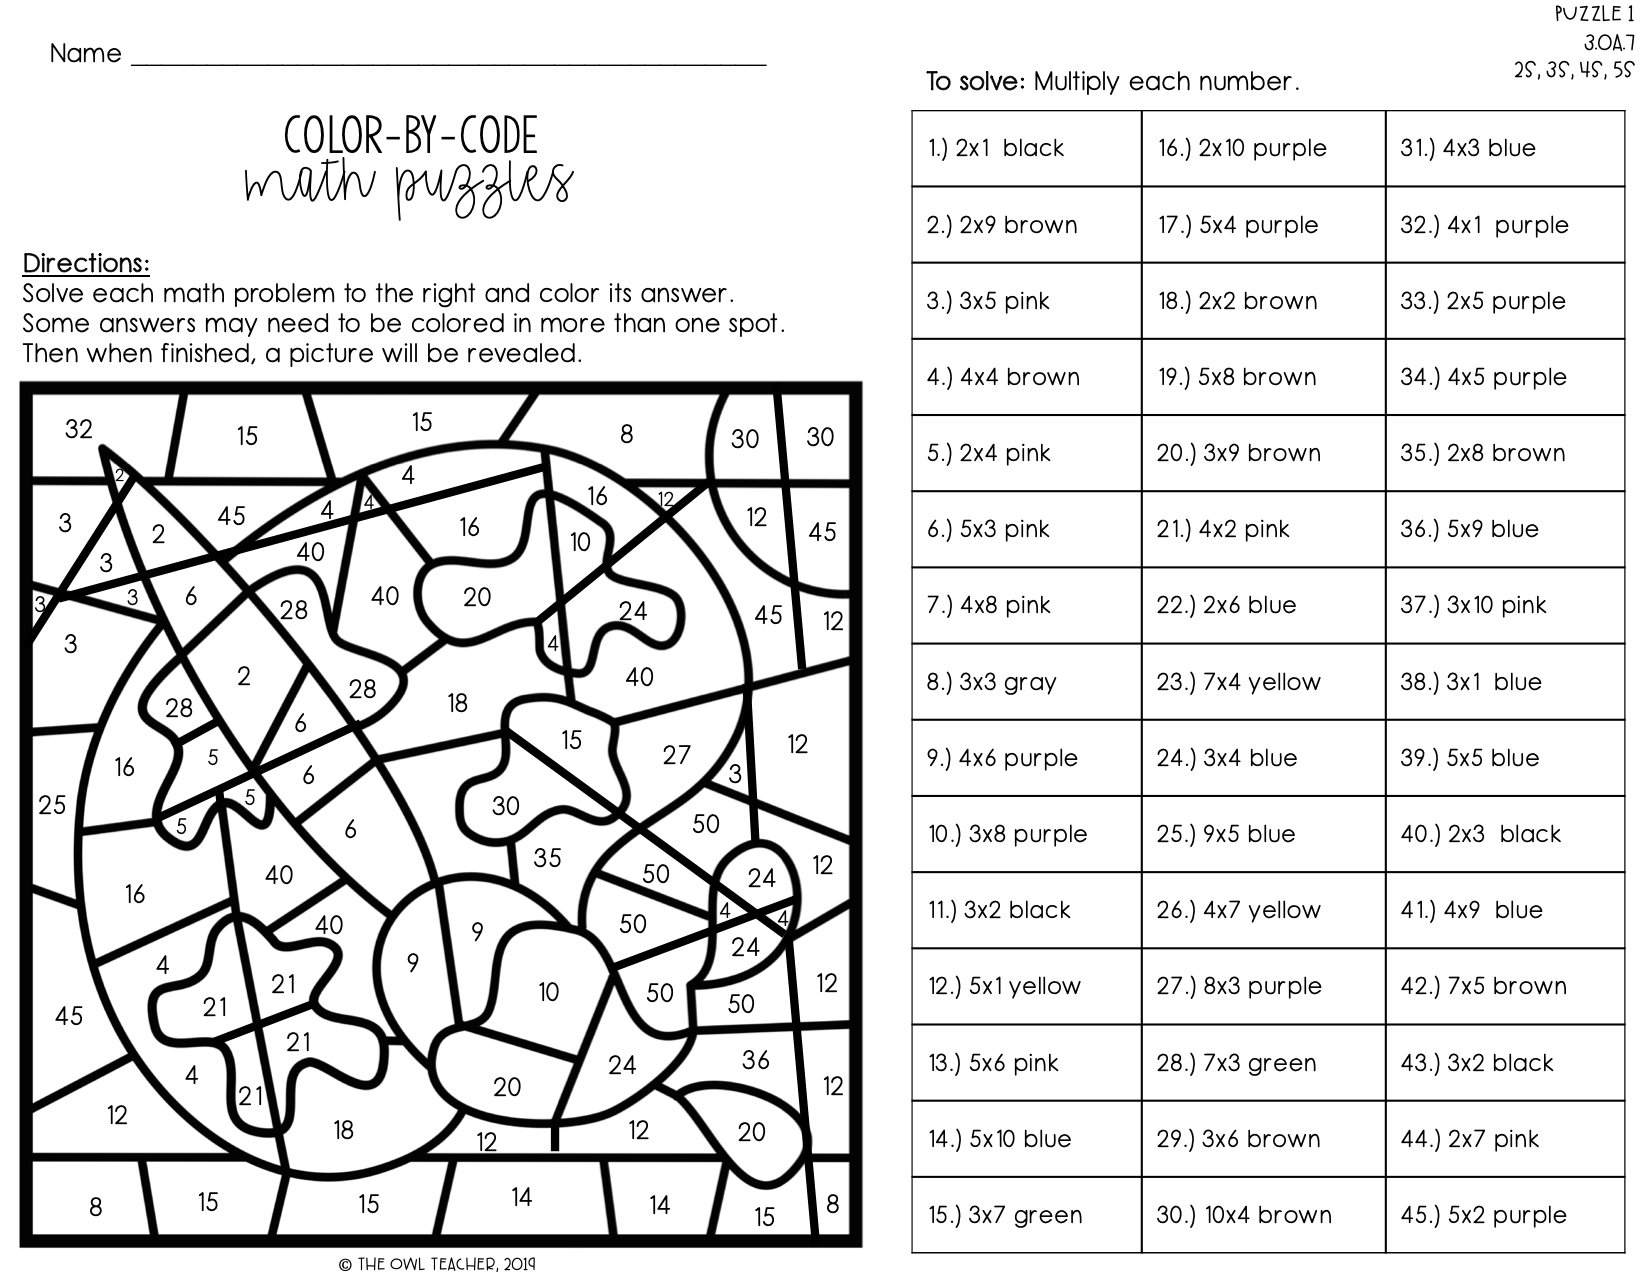 Multiplication Facts Color By Number Color By Code